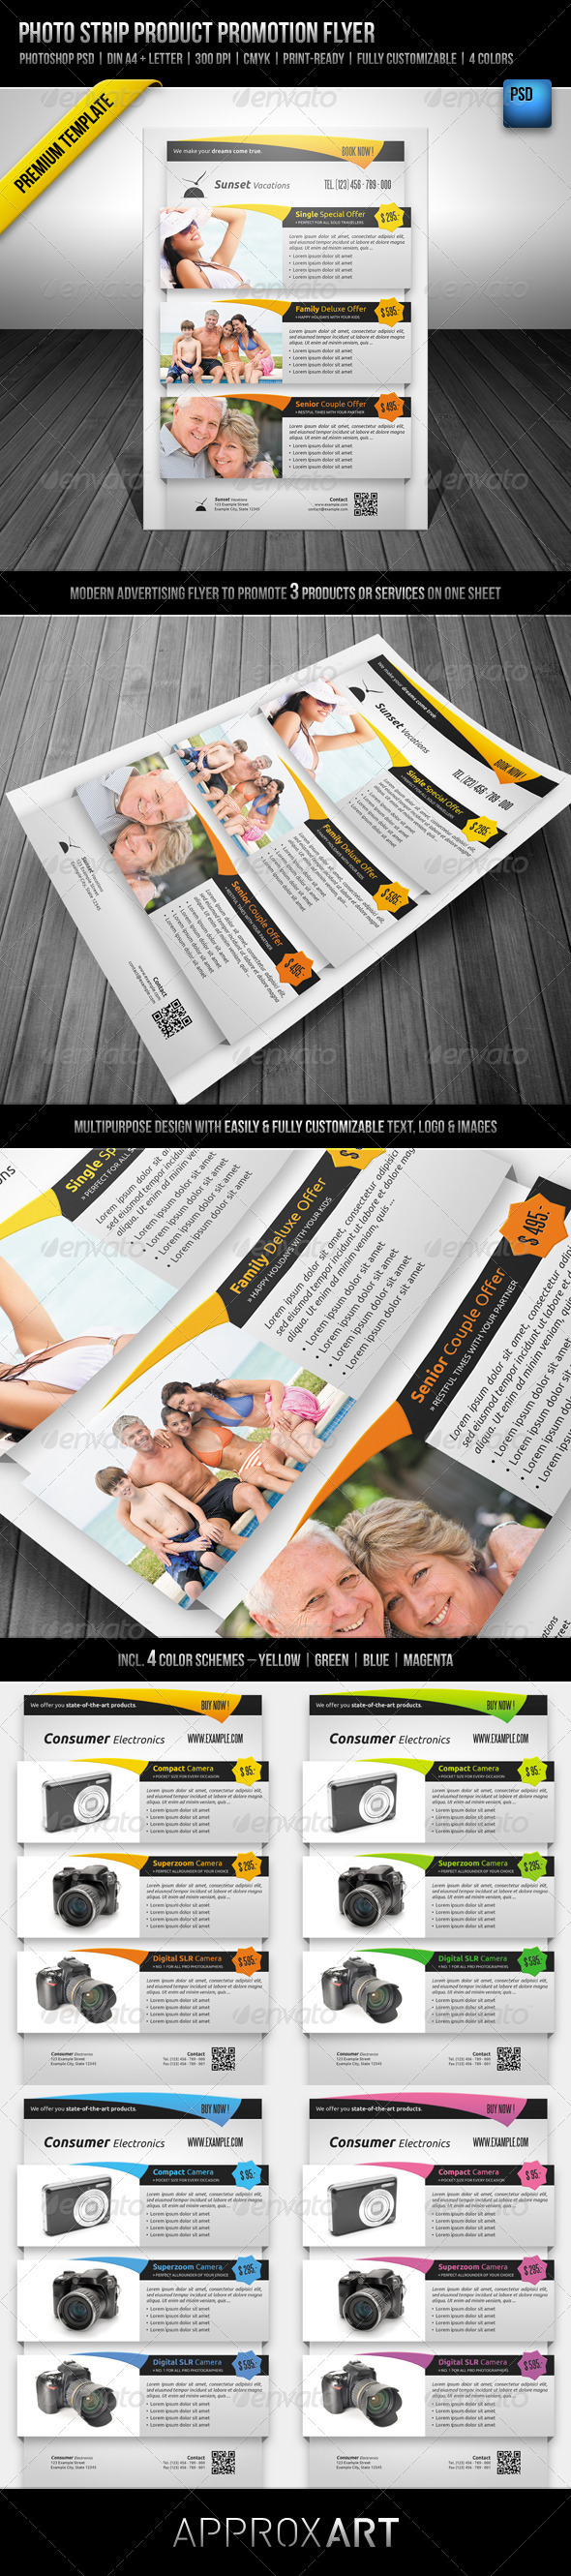 GraphicRiver Photo Strip Product Promotion Flyer 2221012